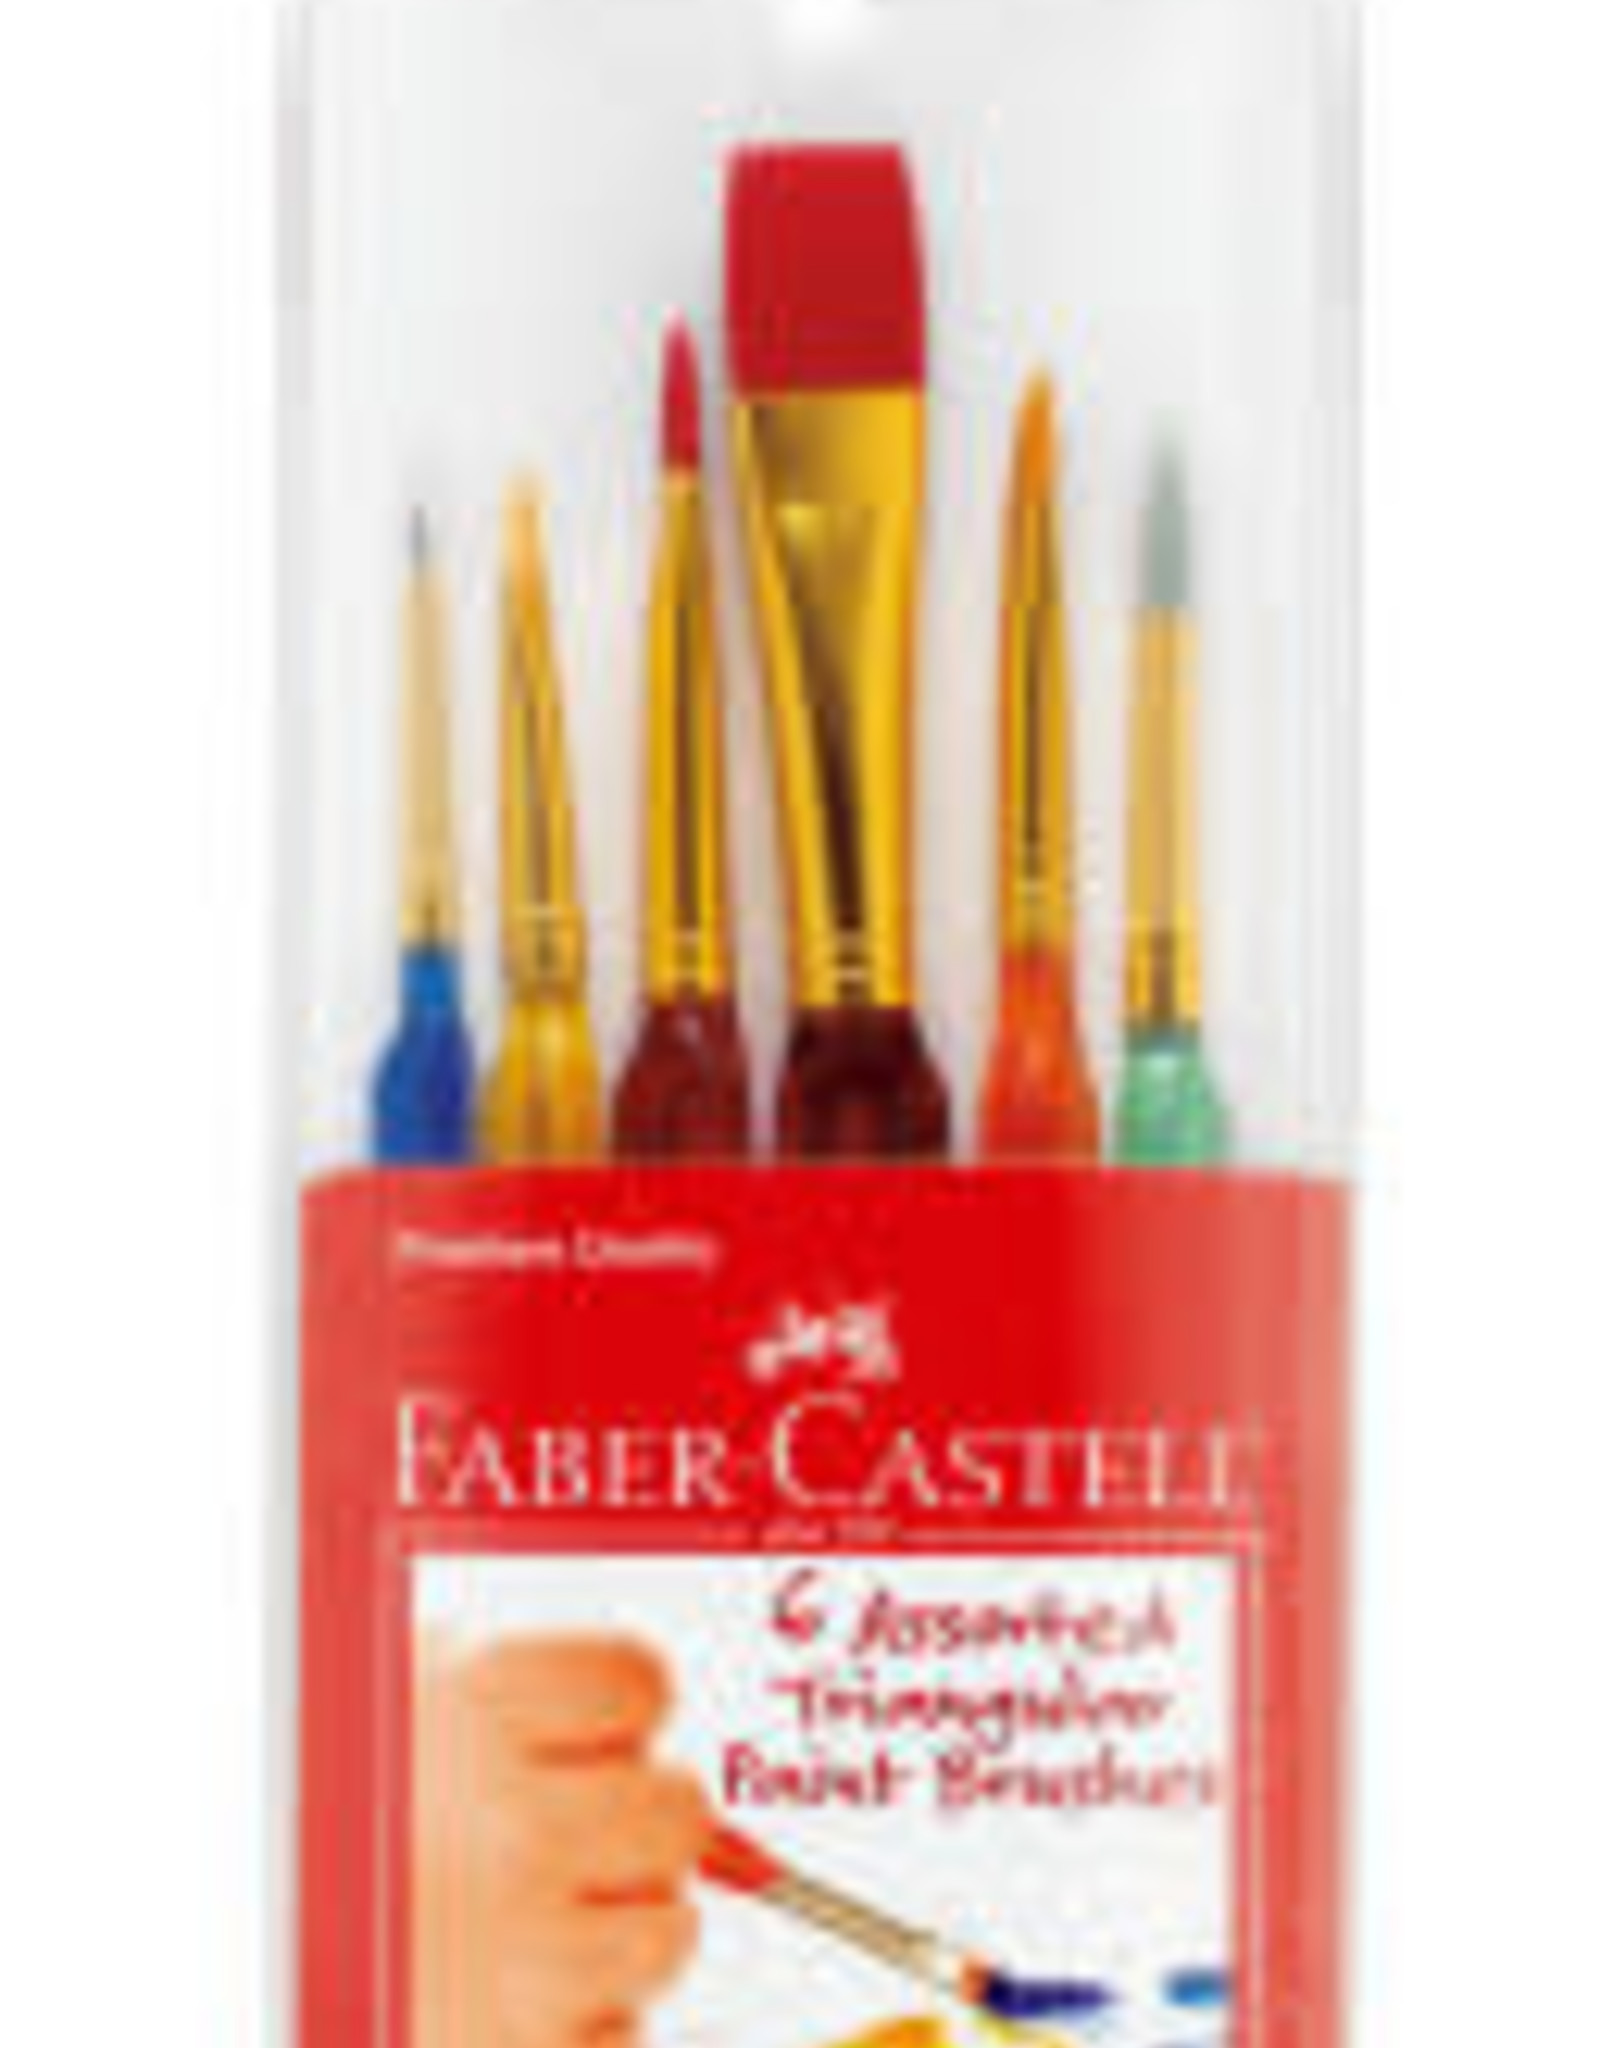 Faber-Castell 6 Assorted Triangular Paint Brushes